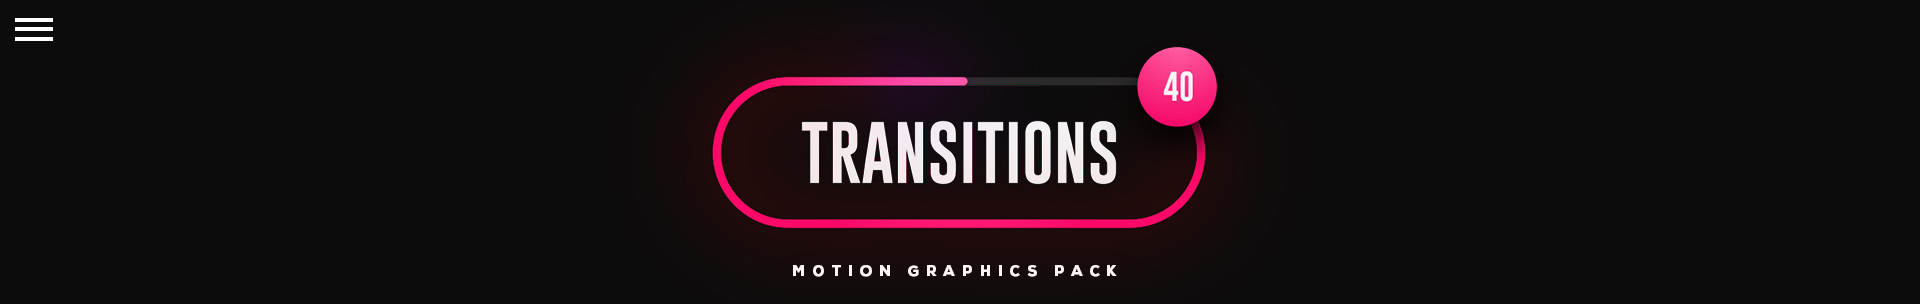 Motion Graphics Pack V2 - 14